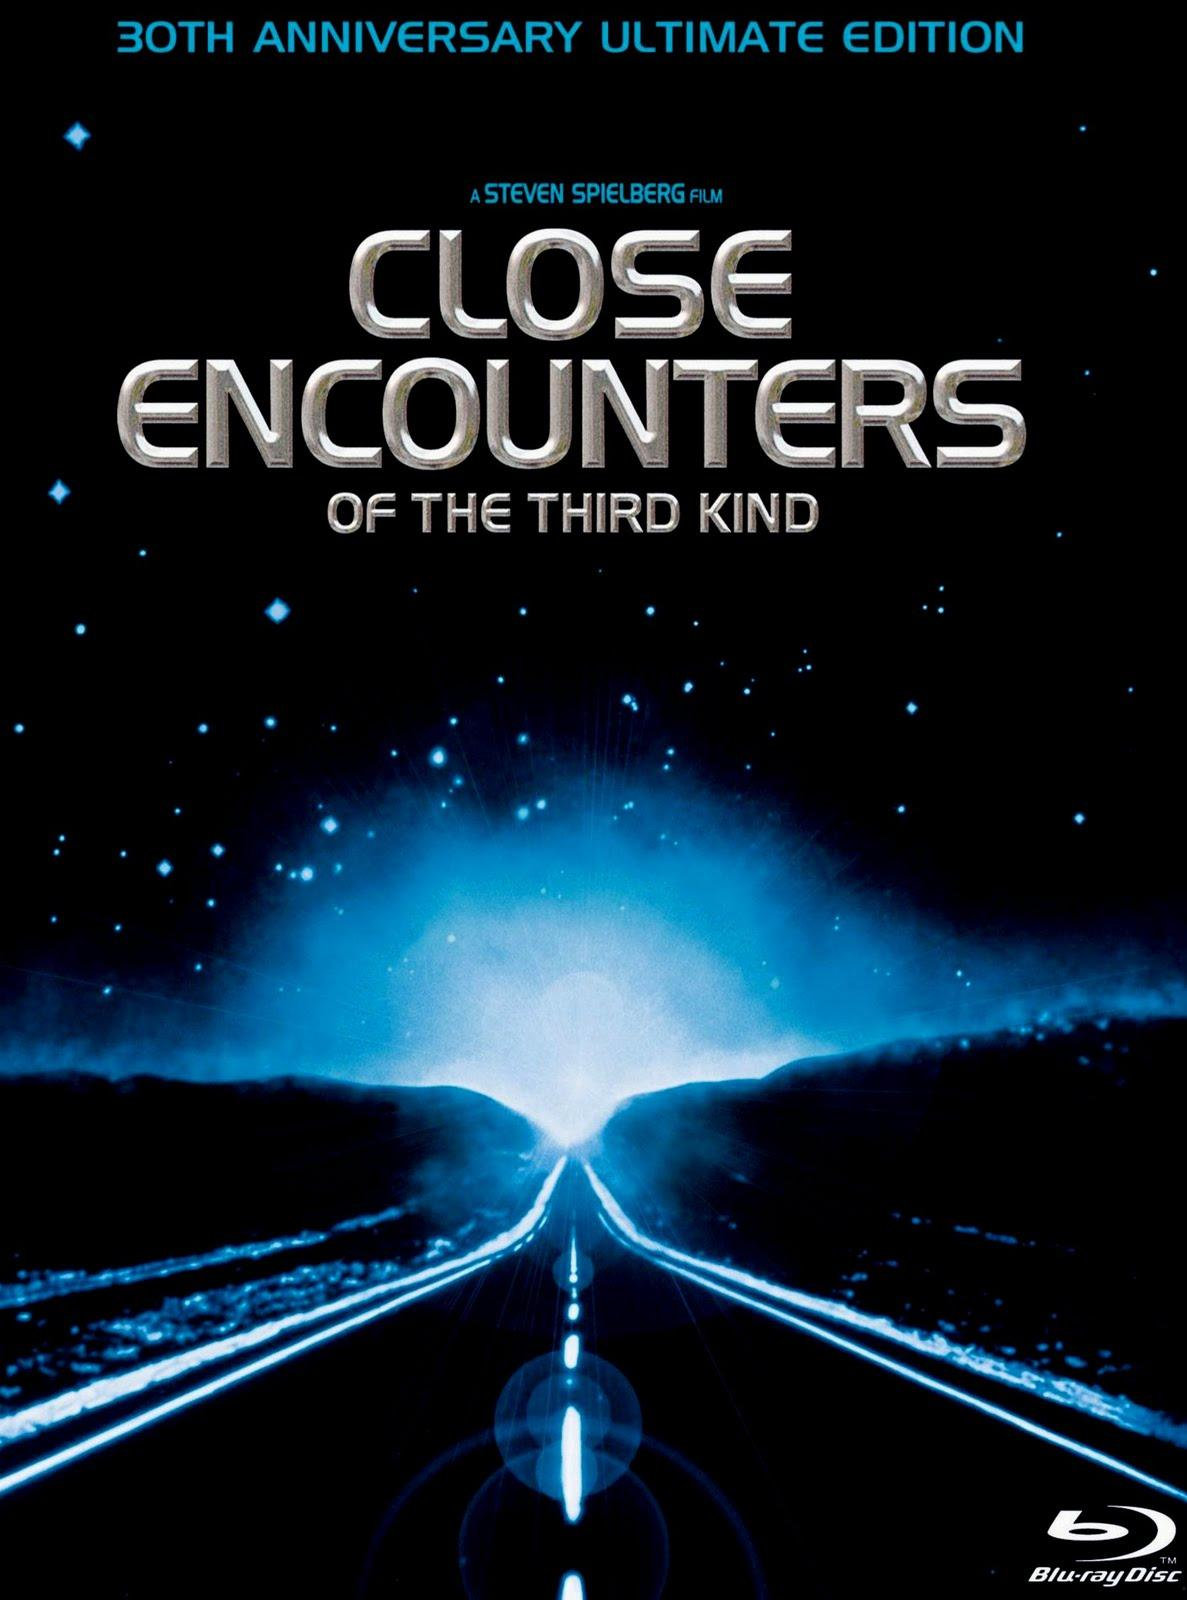 closeencounters Nerdipop